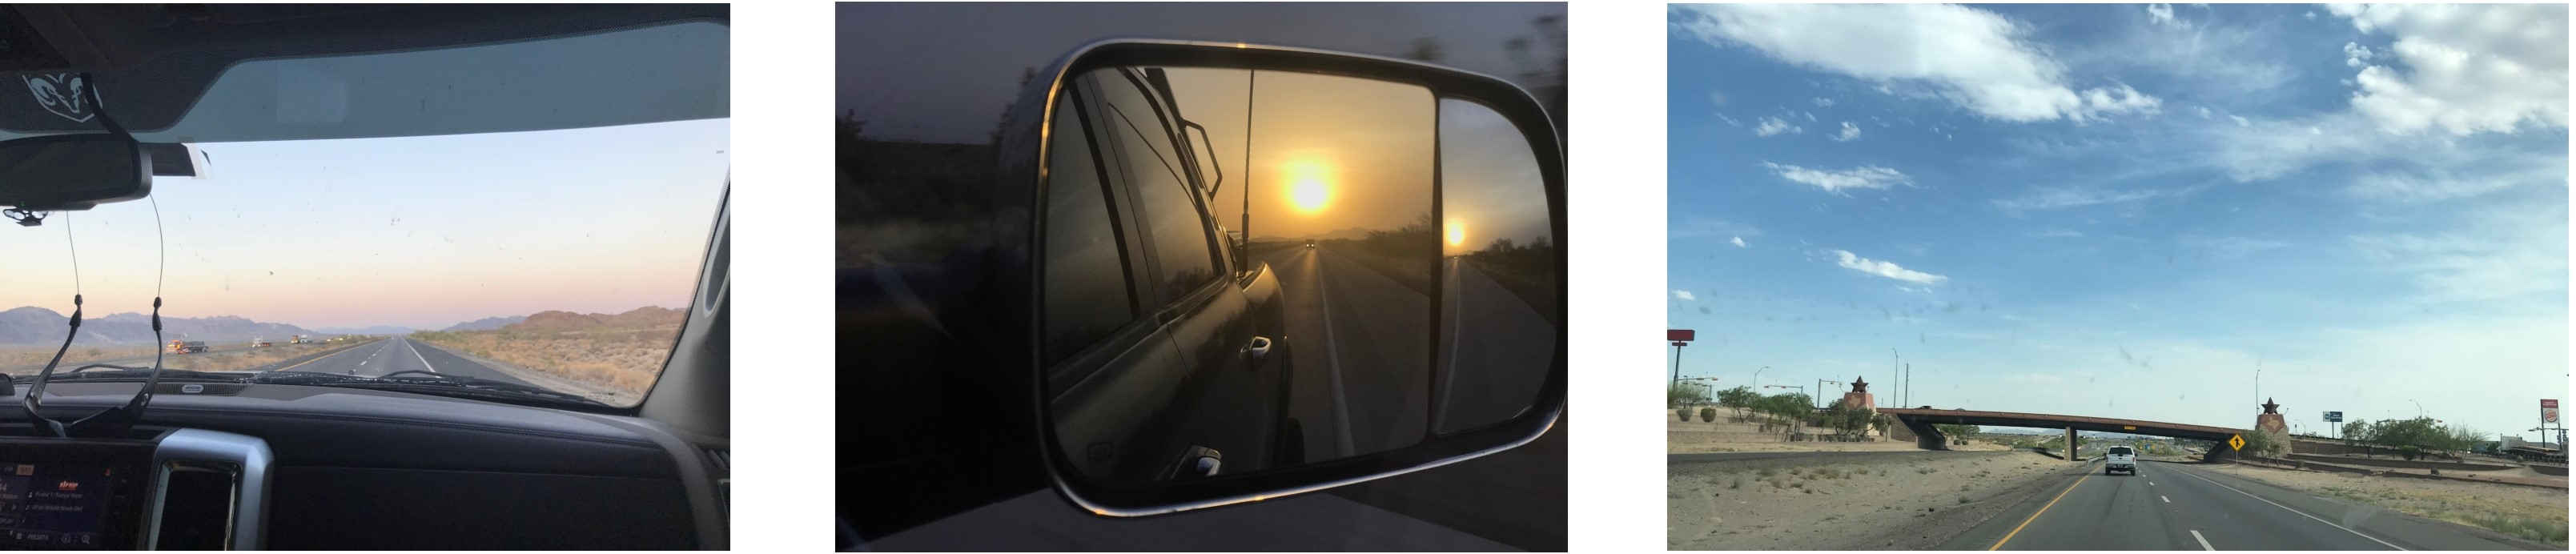 Three photos taken from inside a car on a road trip. The first one features a pastel sunset, the second one features a sun setting in a rear view mirror, and the third one has a blue sky with clouds.